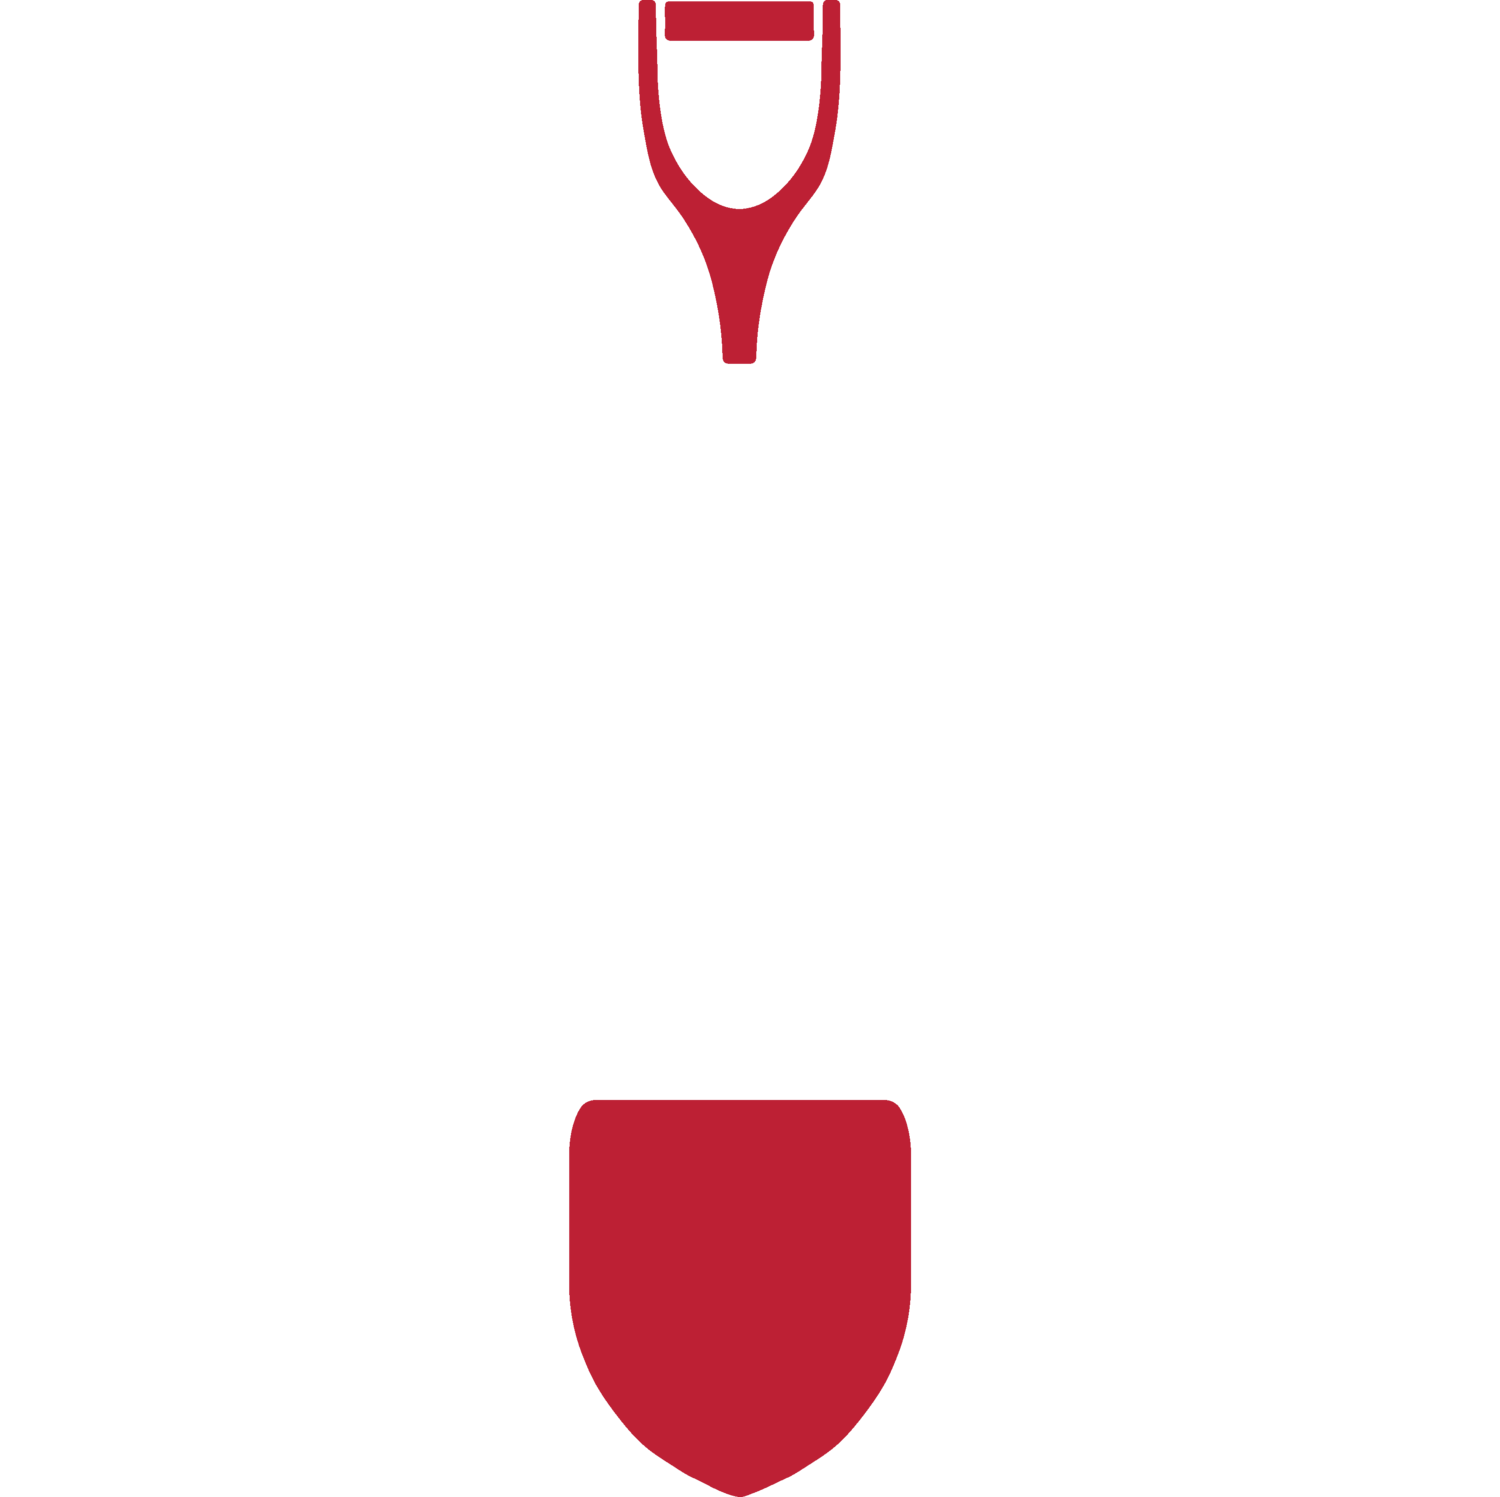 Mark Bates Landscaping & Garden Center